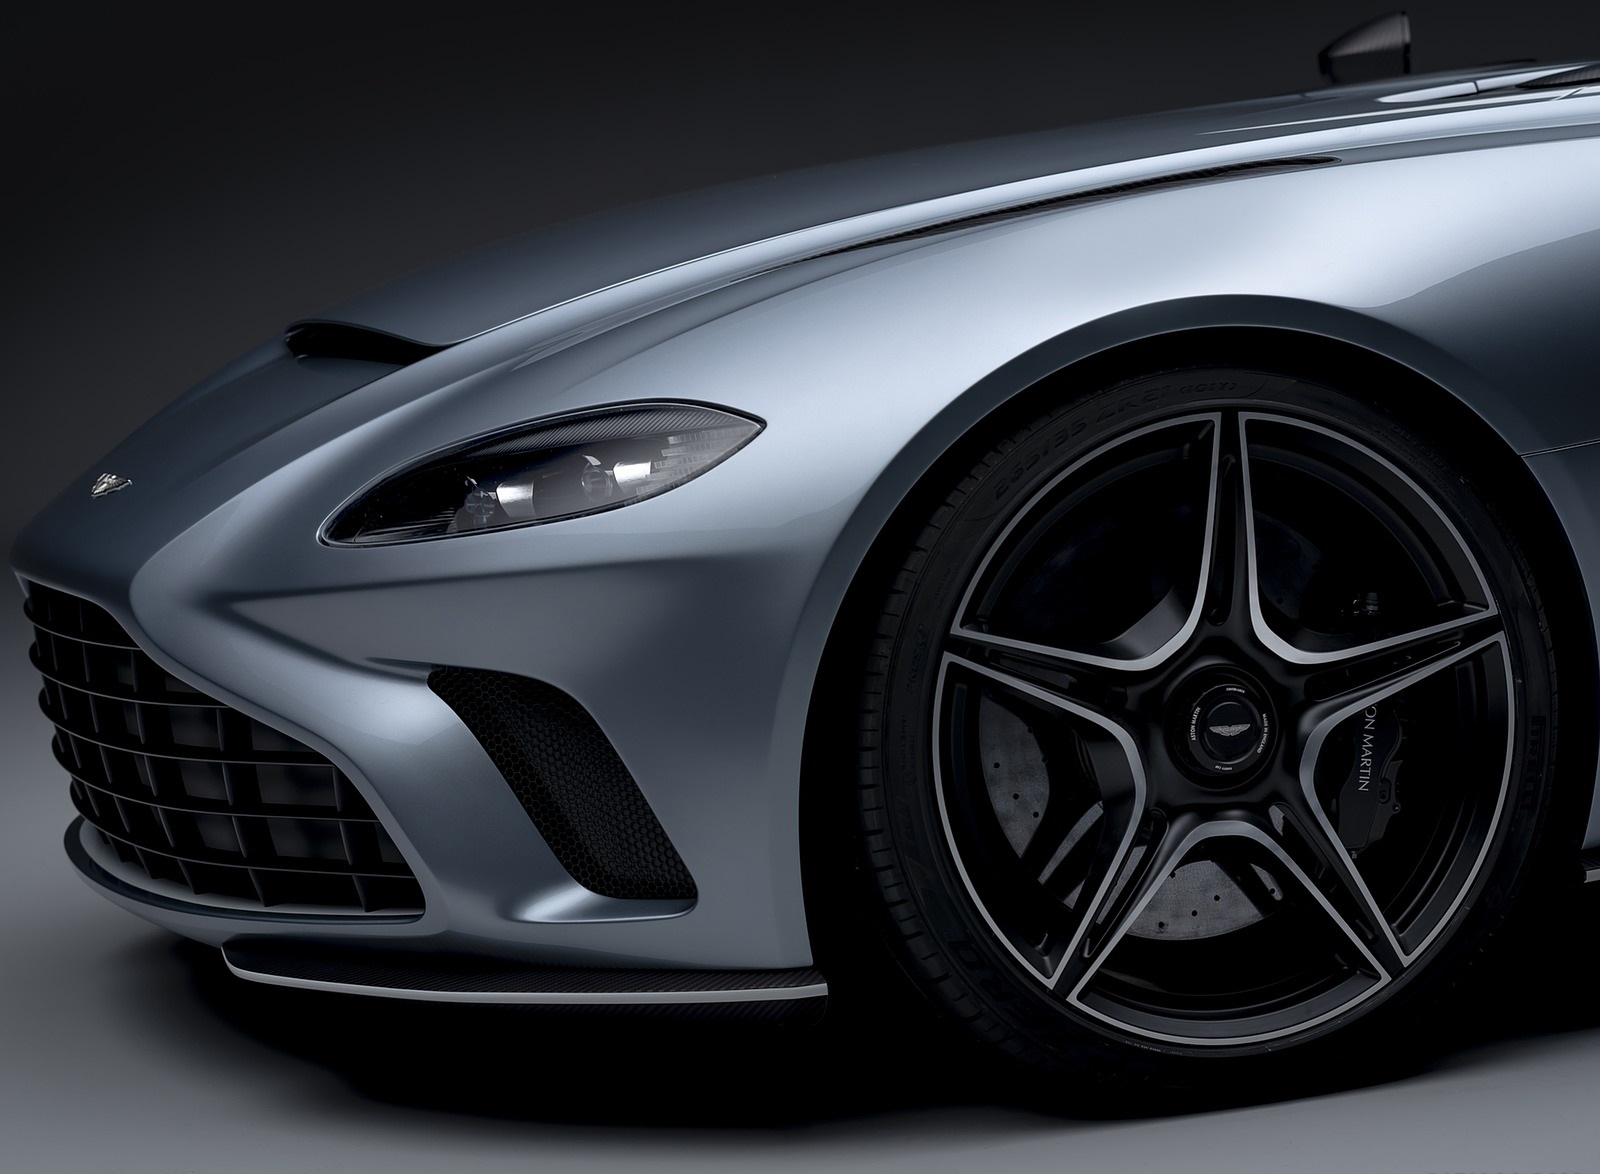 2021 Aston Martin V12 Speedster Wheel Wallpapers (7)